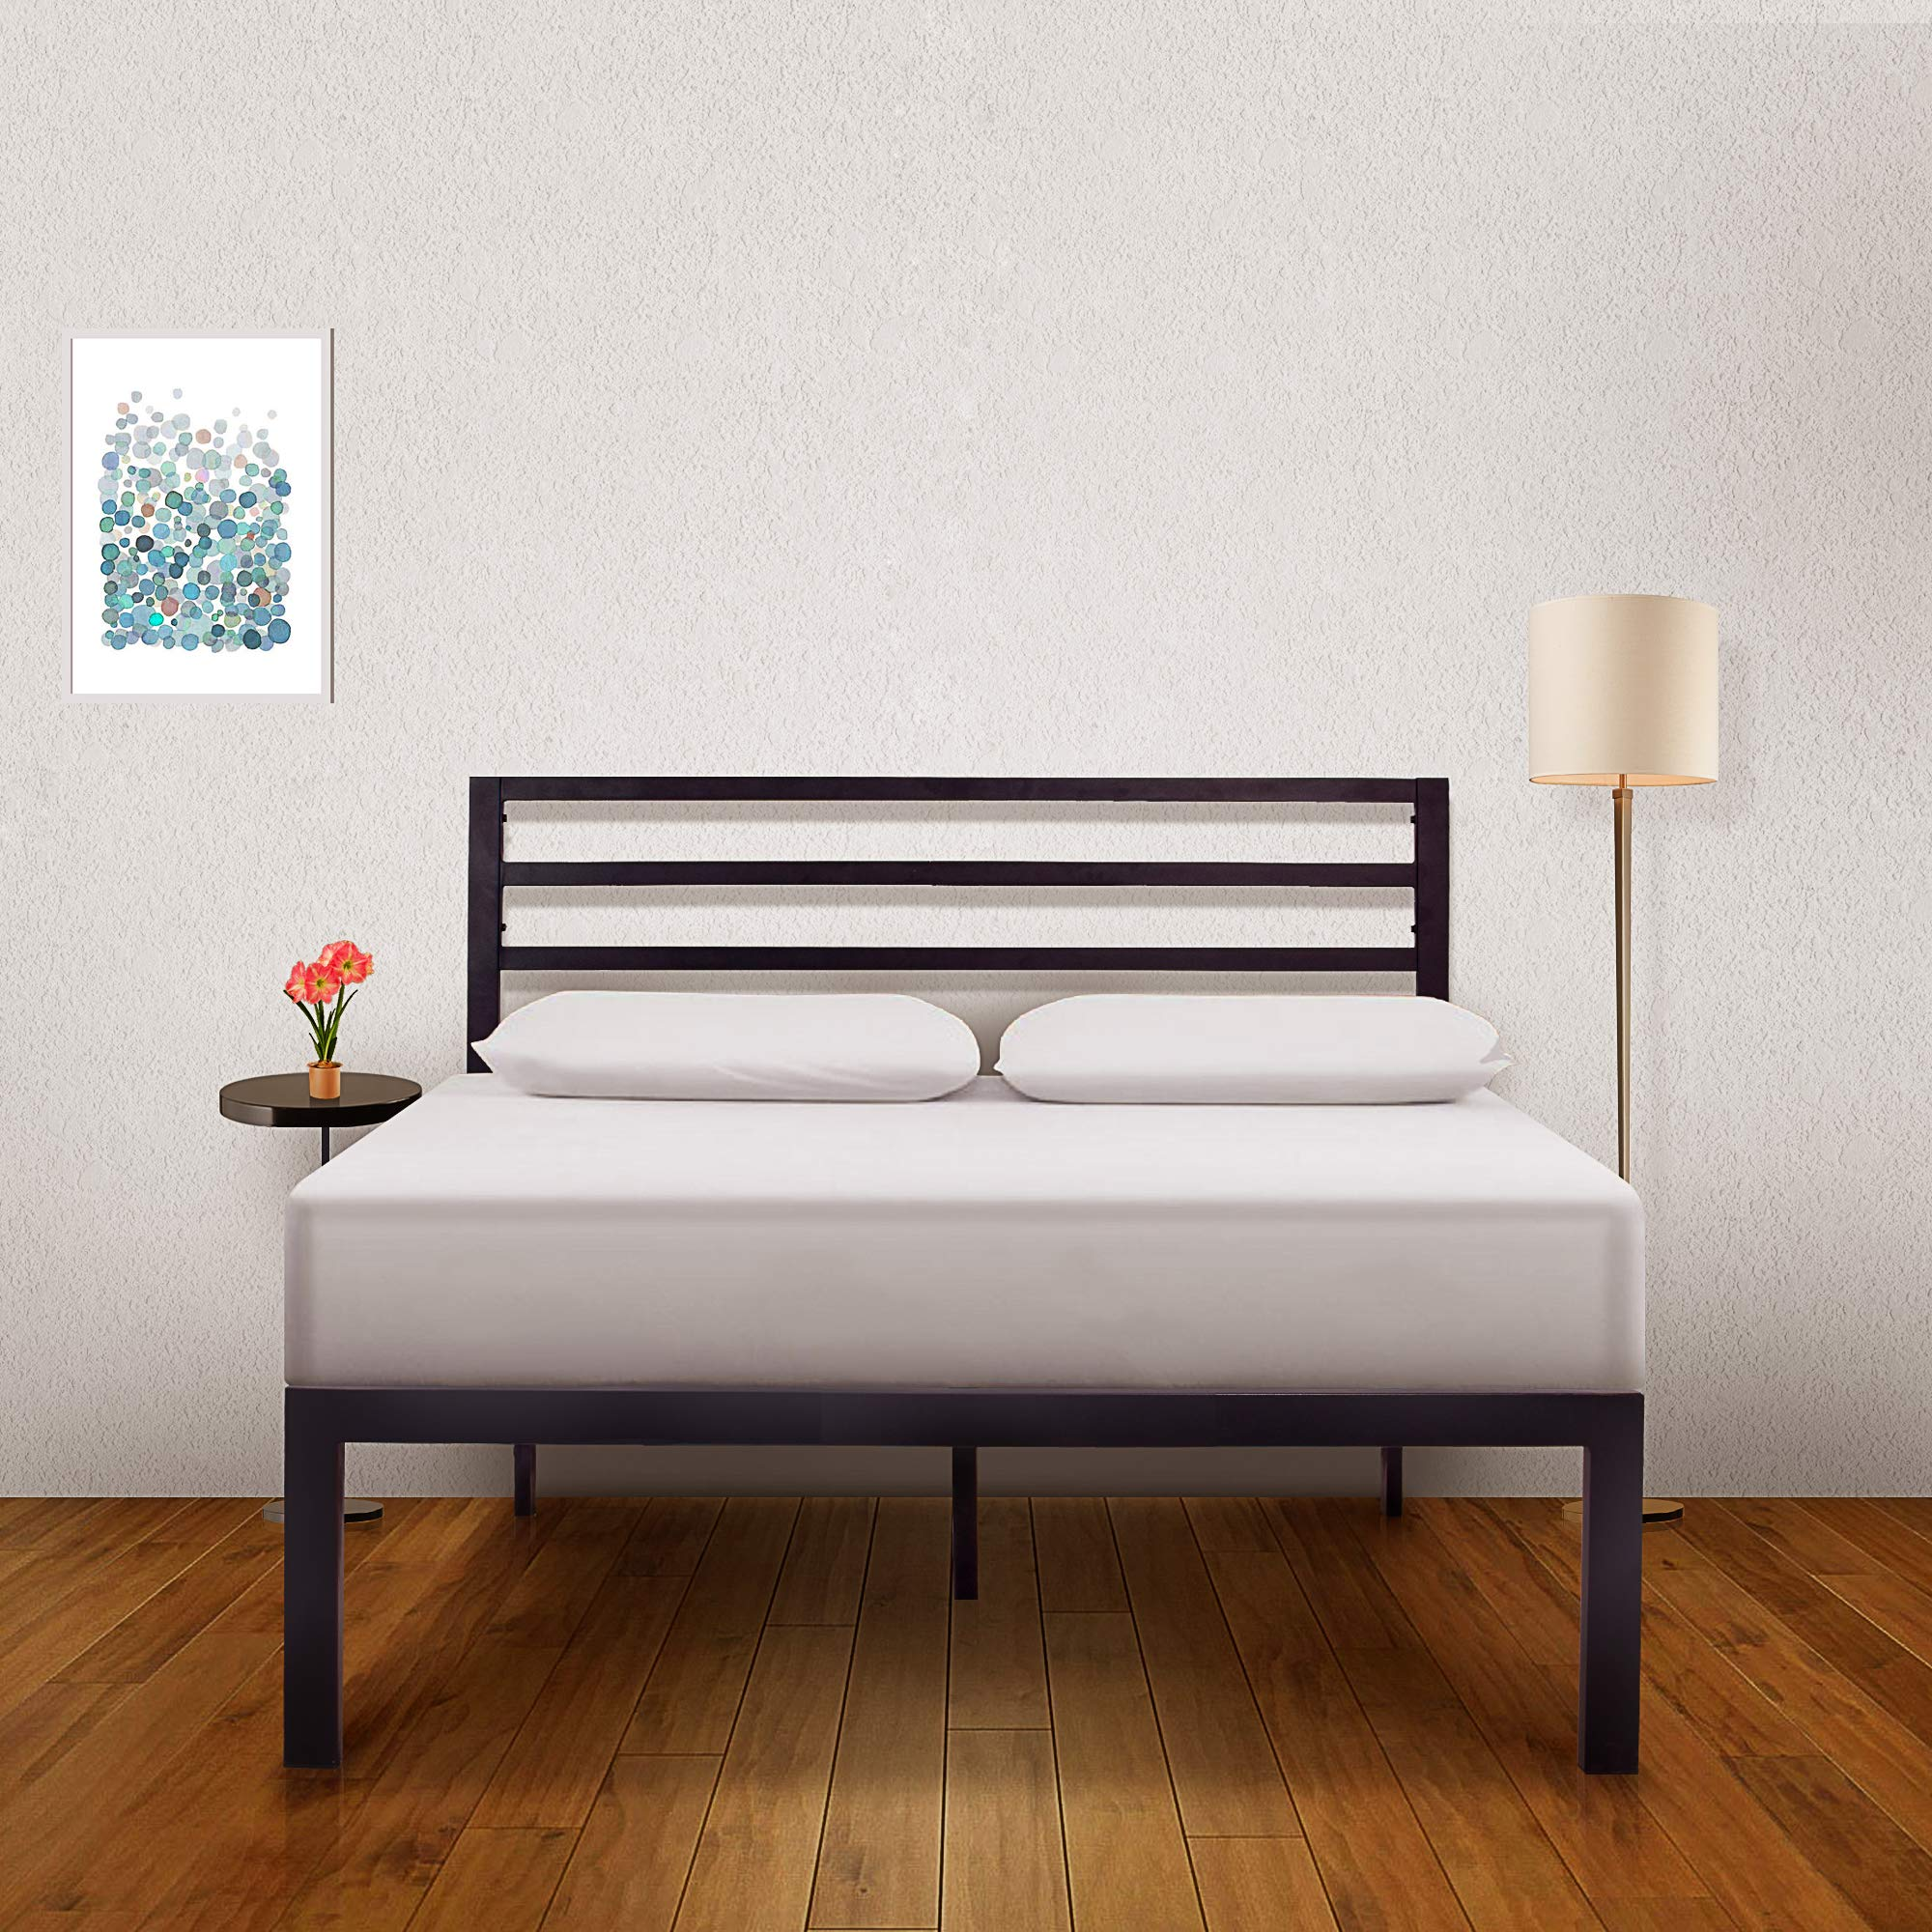 Ambee21 - Bed Frame with Headboard: (14 inch) Queen Bed Frame - Black Heavy Duty Metal Bed Frame, Sturdy Mattress Support, Under Bed Storage, Steel Slat Support, Easy DIY Setup, No Box Spring Needed